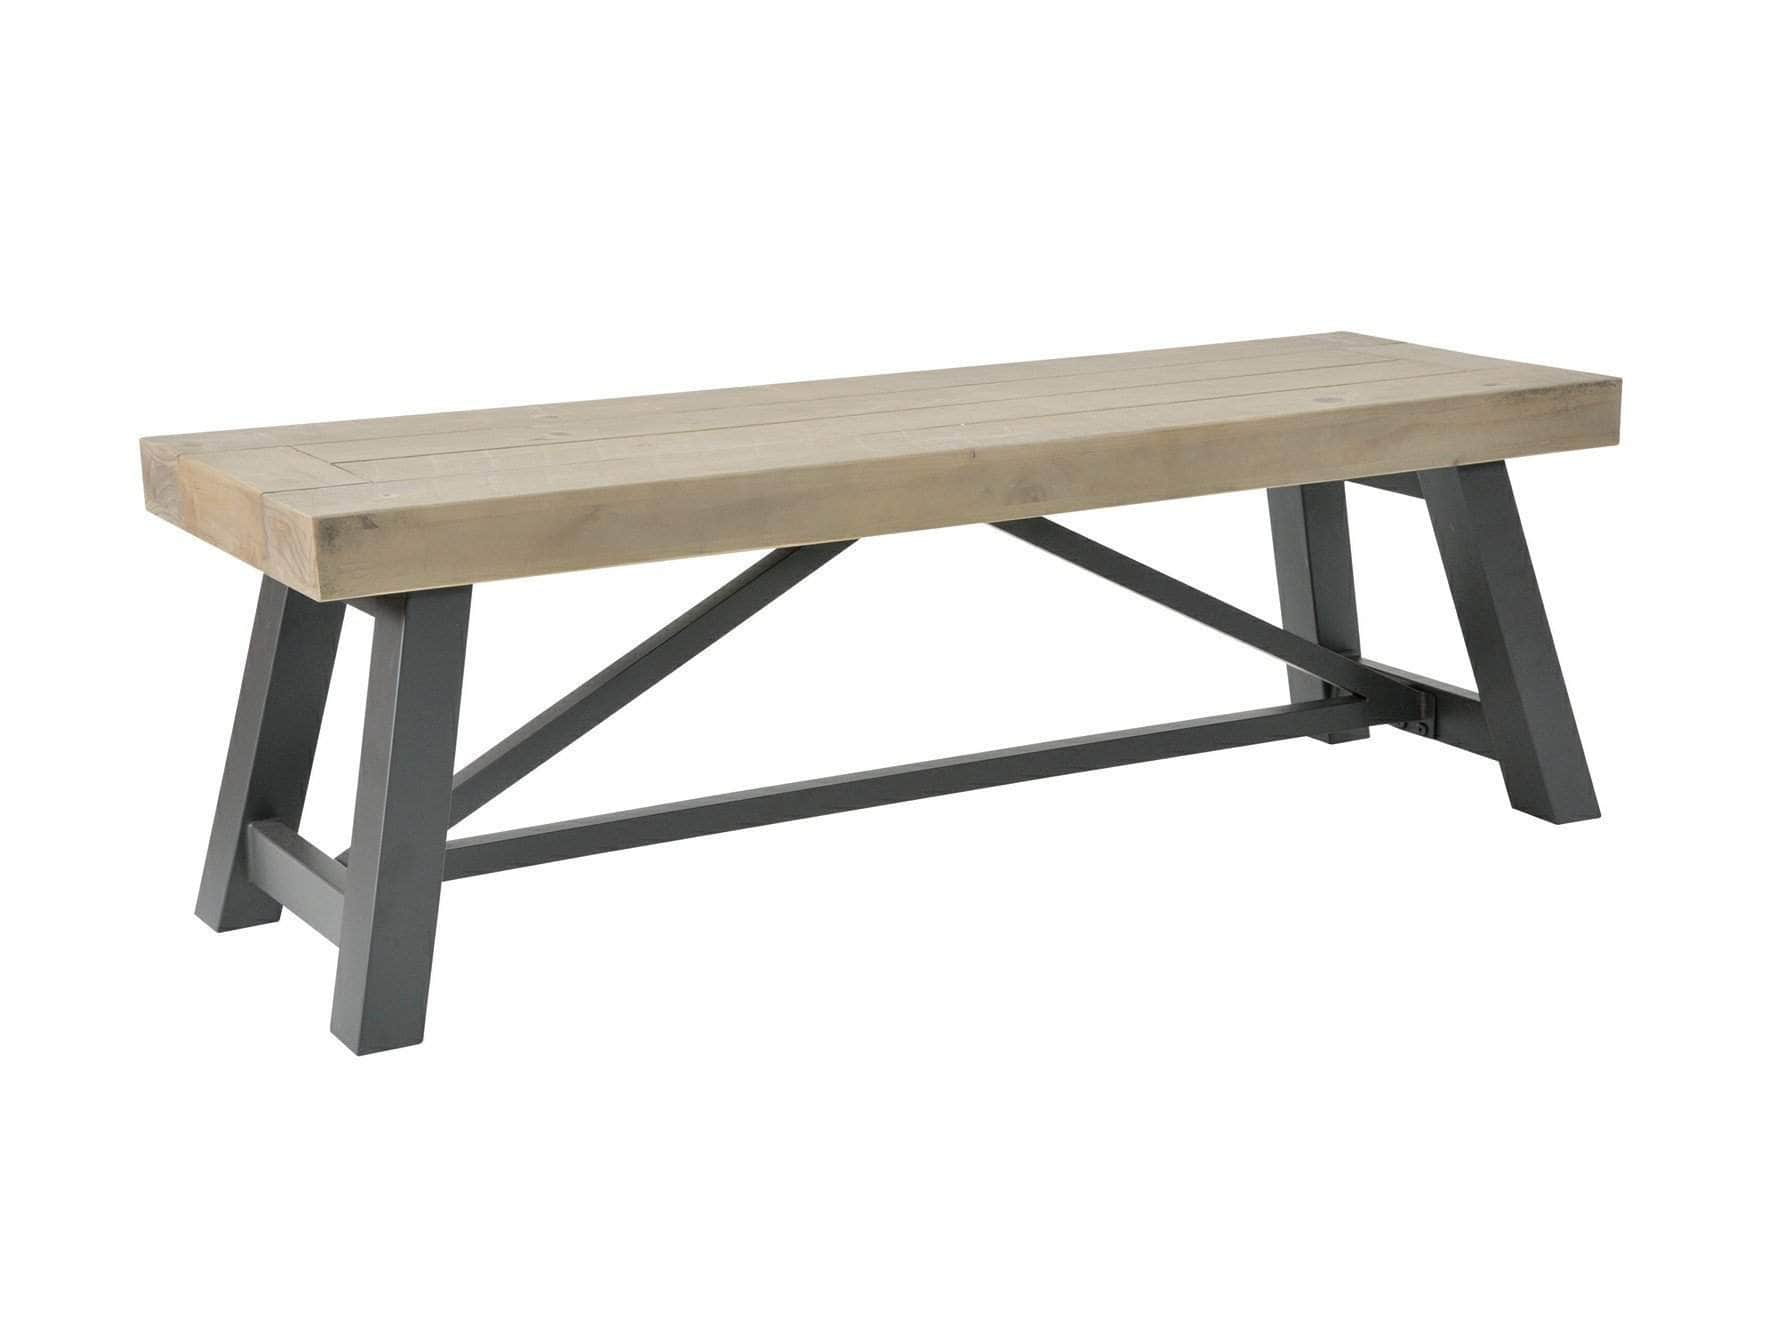 Industrial style dining bench with reclaimed wood seat and power-coated steel base. Available in choice of sizes.